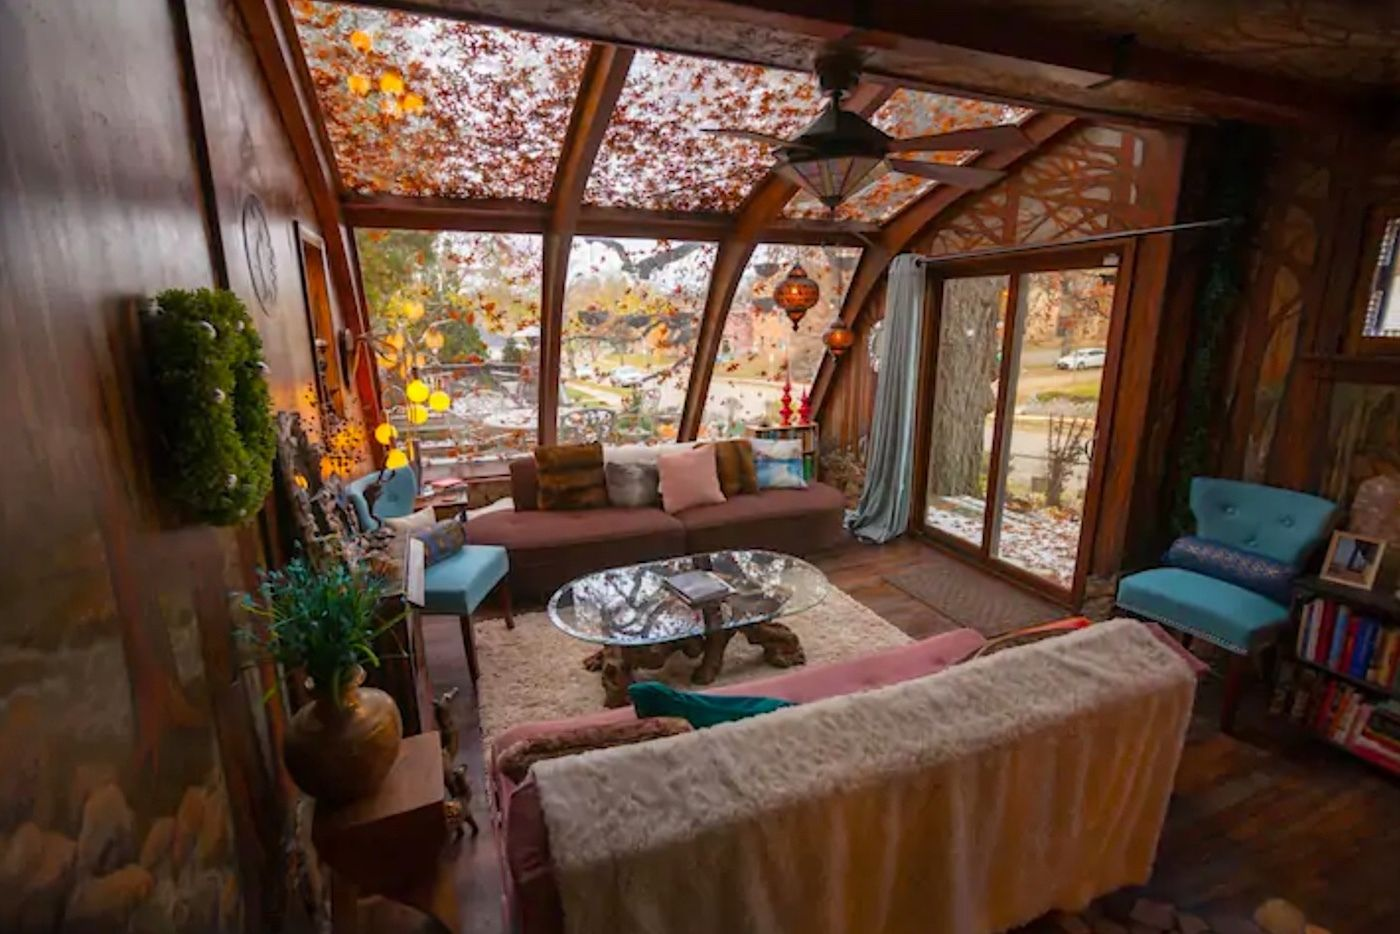 wolf-house-studio-Minnesota-most-wishlisted-midwest-airbnbs